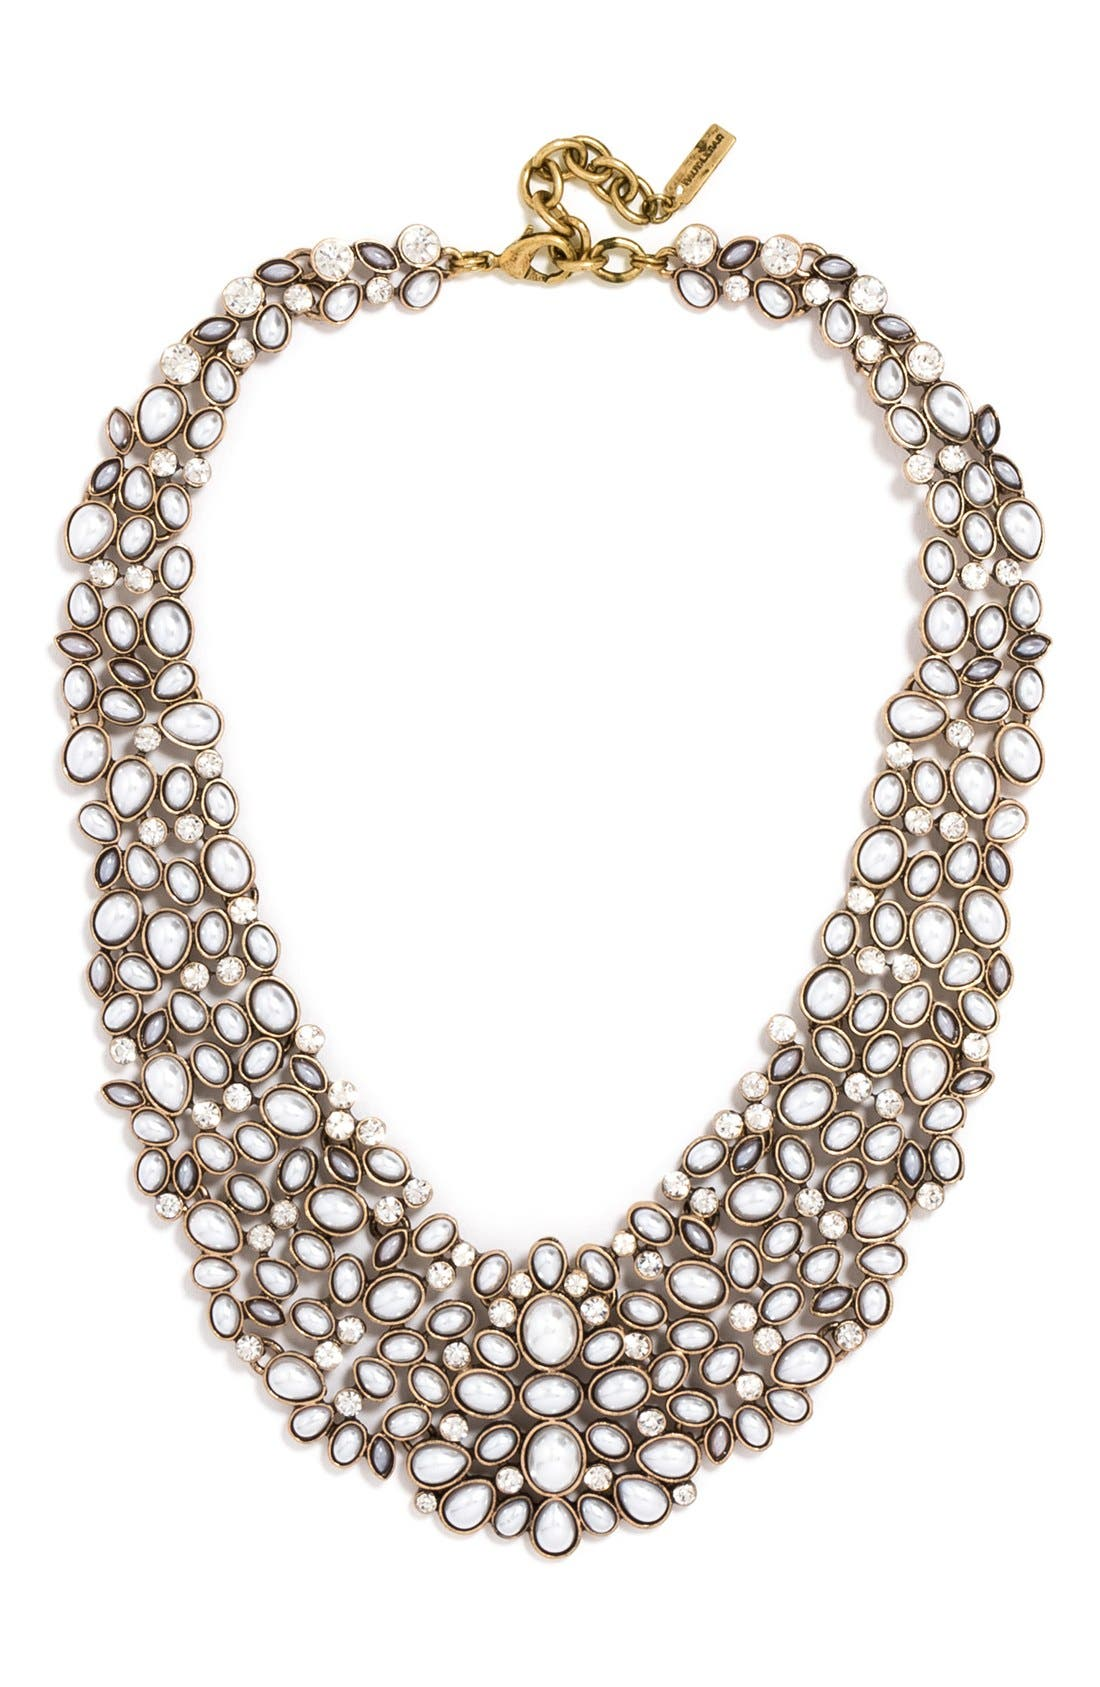 Alternate Image 1 Selected - BaubleBar 'Kew' Crystal Collar Necklace